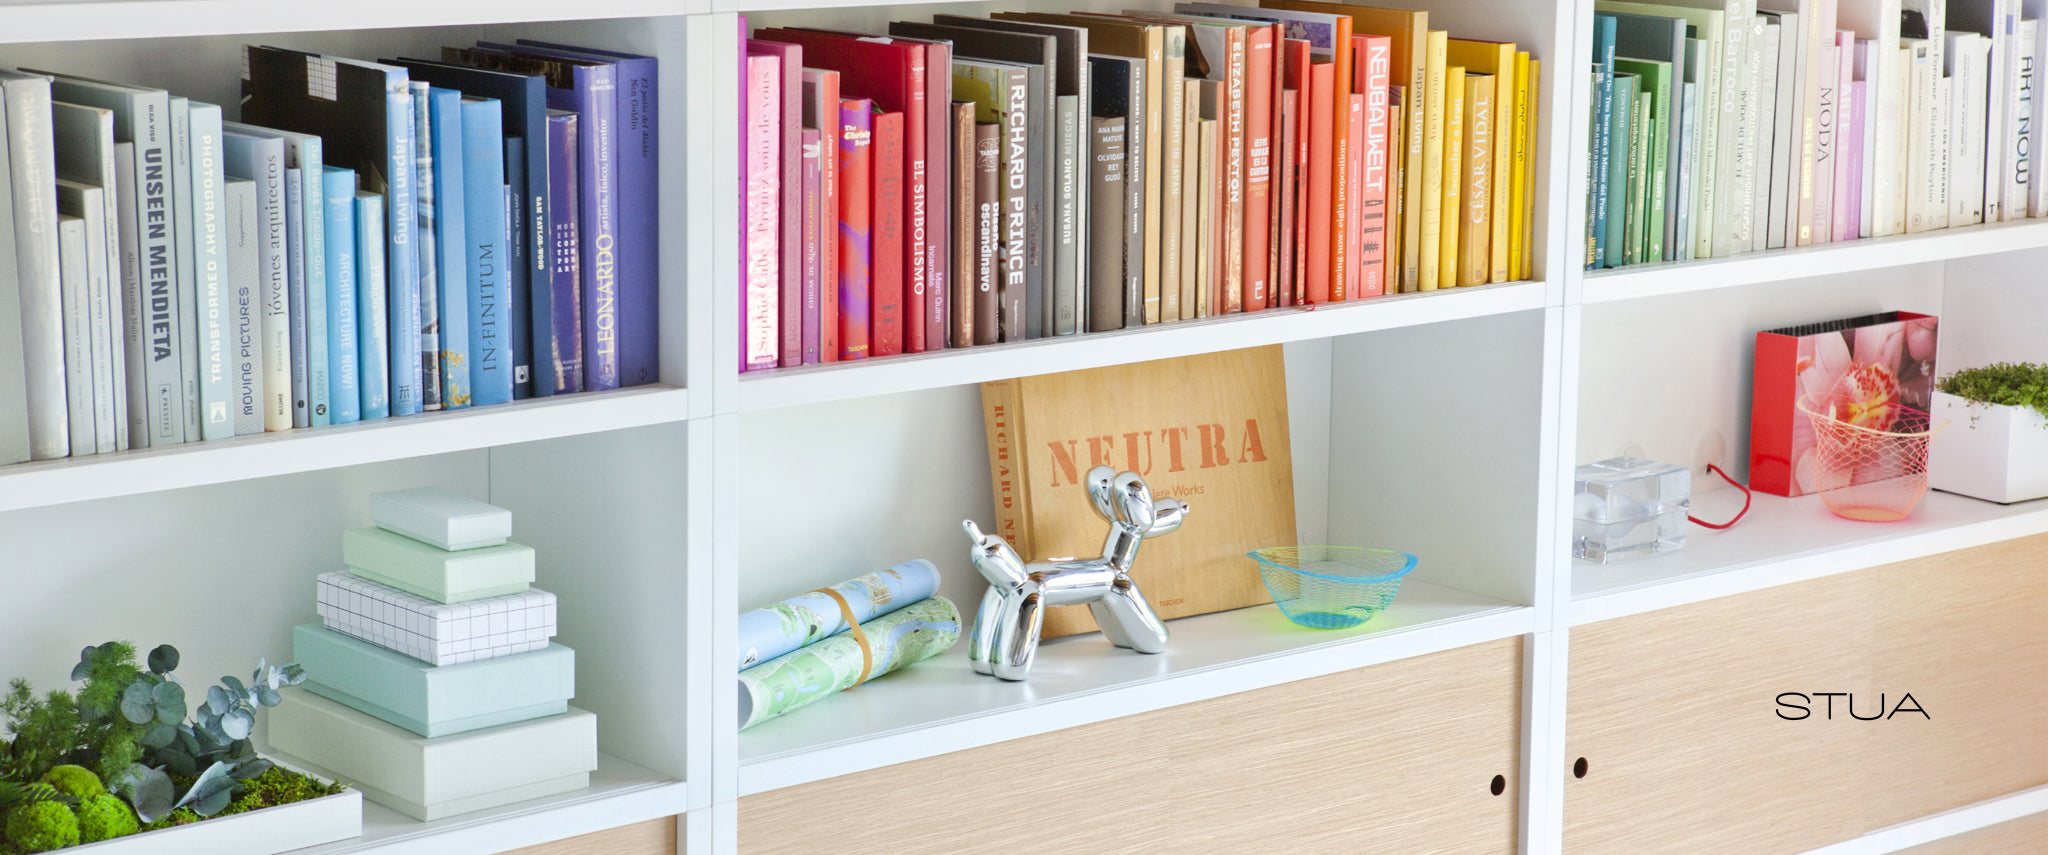 Bauhu Lifestyle shelving and bookshelves